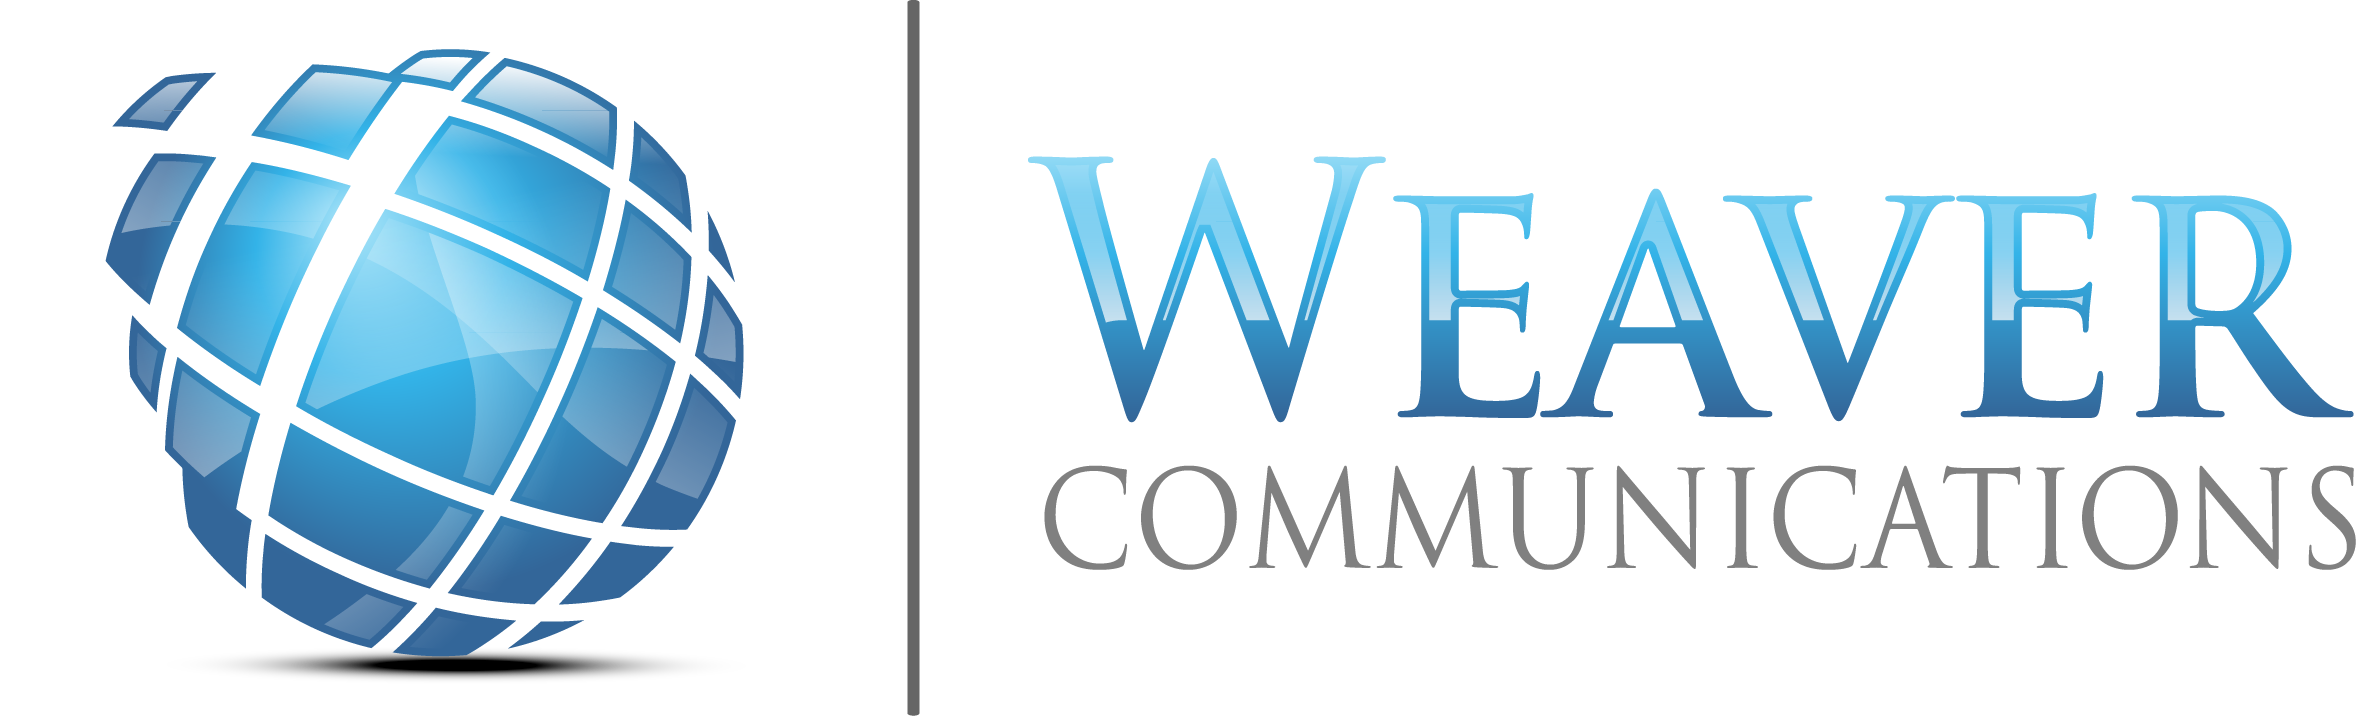 weaver communications digital & social media marketing